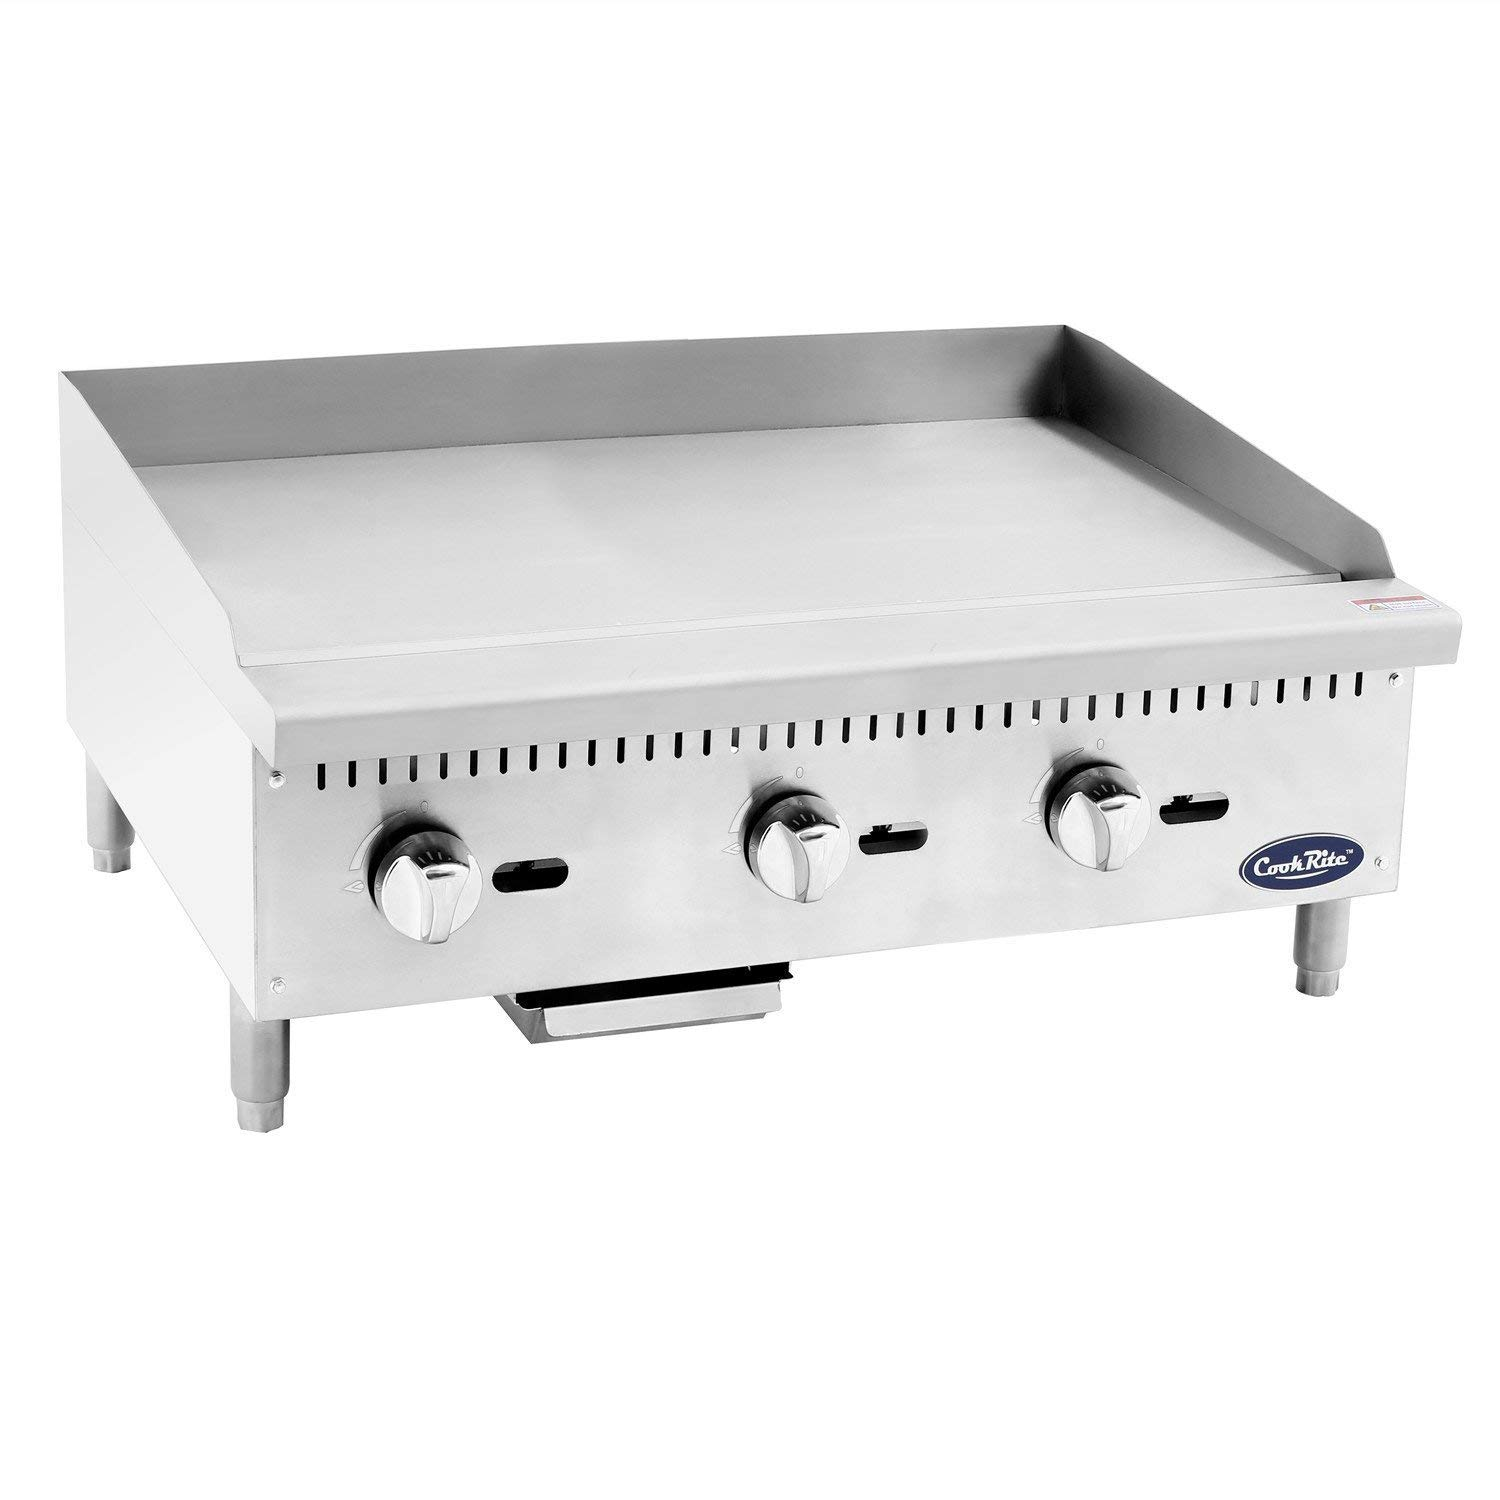 Max 43% OFF ATOSA US ATMG-36 Commercial Griddle Heavy Max 72% OFF Manual Flat Top Duty R